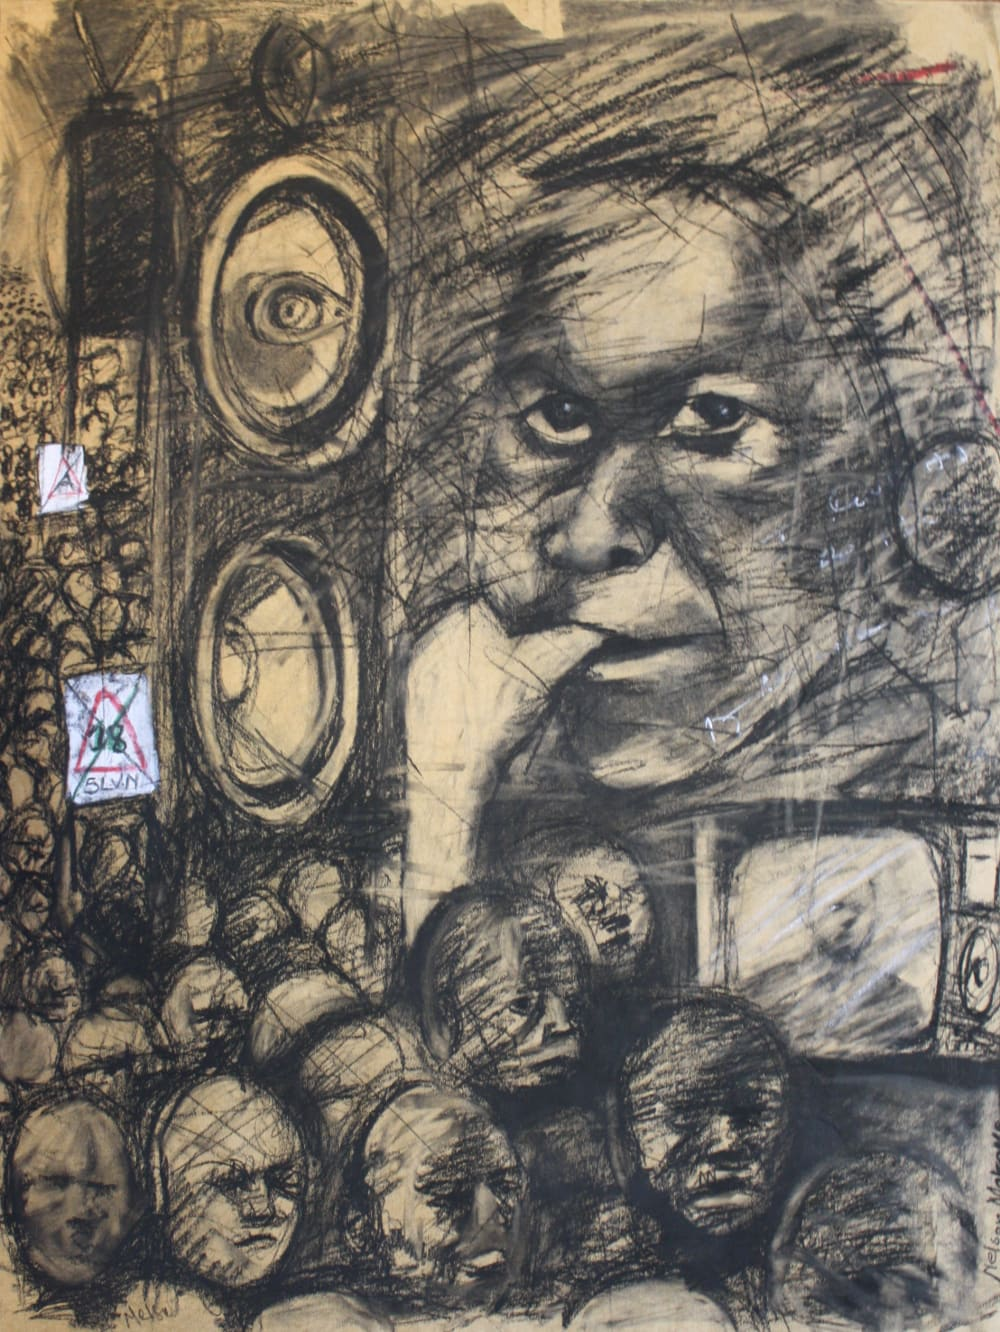 <span class=&#34;link fancybox-details-link&#34;><a href=&#34;/artworks/categories/110/3253-nelson-makamo-untitled-2006/&#34;>View Detail Page</a></span><div class=&#34;artist&#34;><strong>Nelson Makamo</strong></div> <div class=&#34;title&#34;>Untitled, 2006</div> <div class=&#34;medium&#34;>Charcoal & Chalk Pastel On Brown Paper</div> <div class=&#34;dimensions&#34;>70cm x 54cm framed</div><div class=&#34;price&#34;>R100,000.00</div>